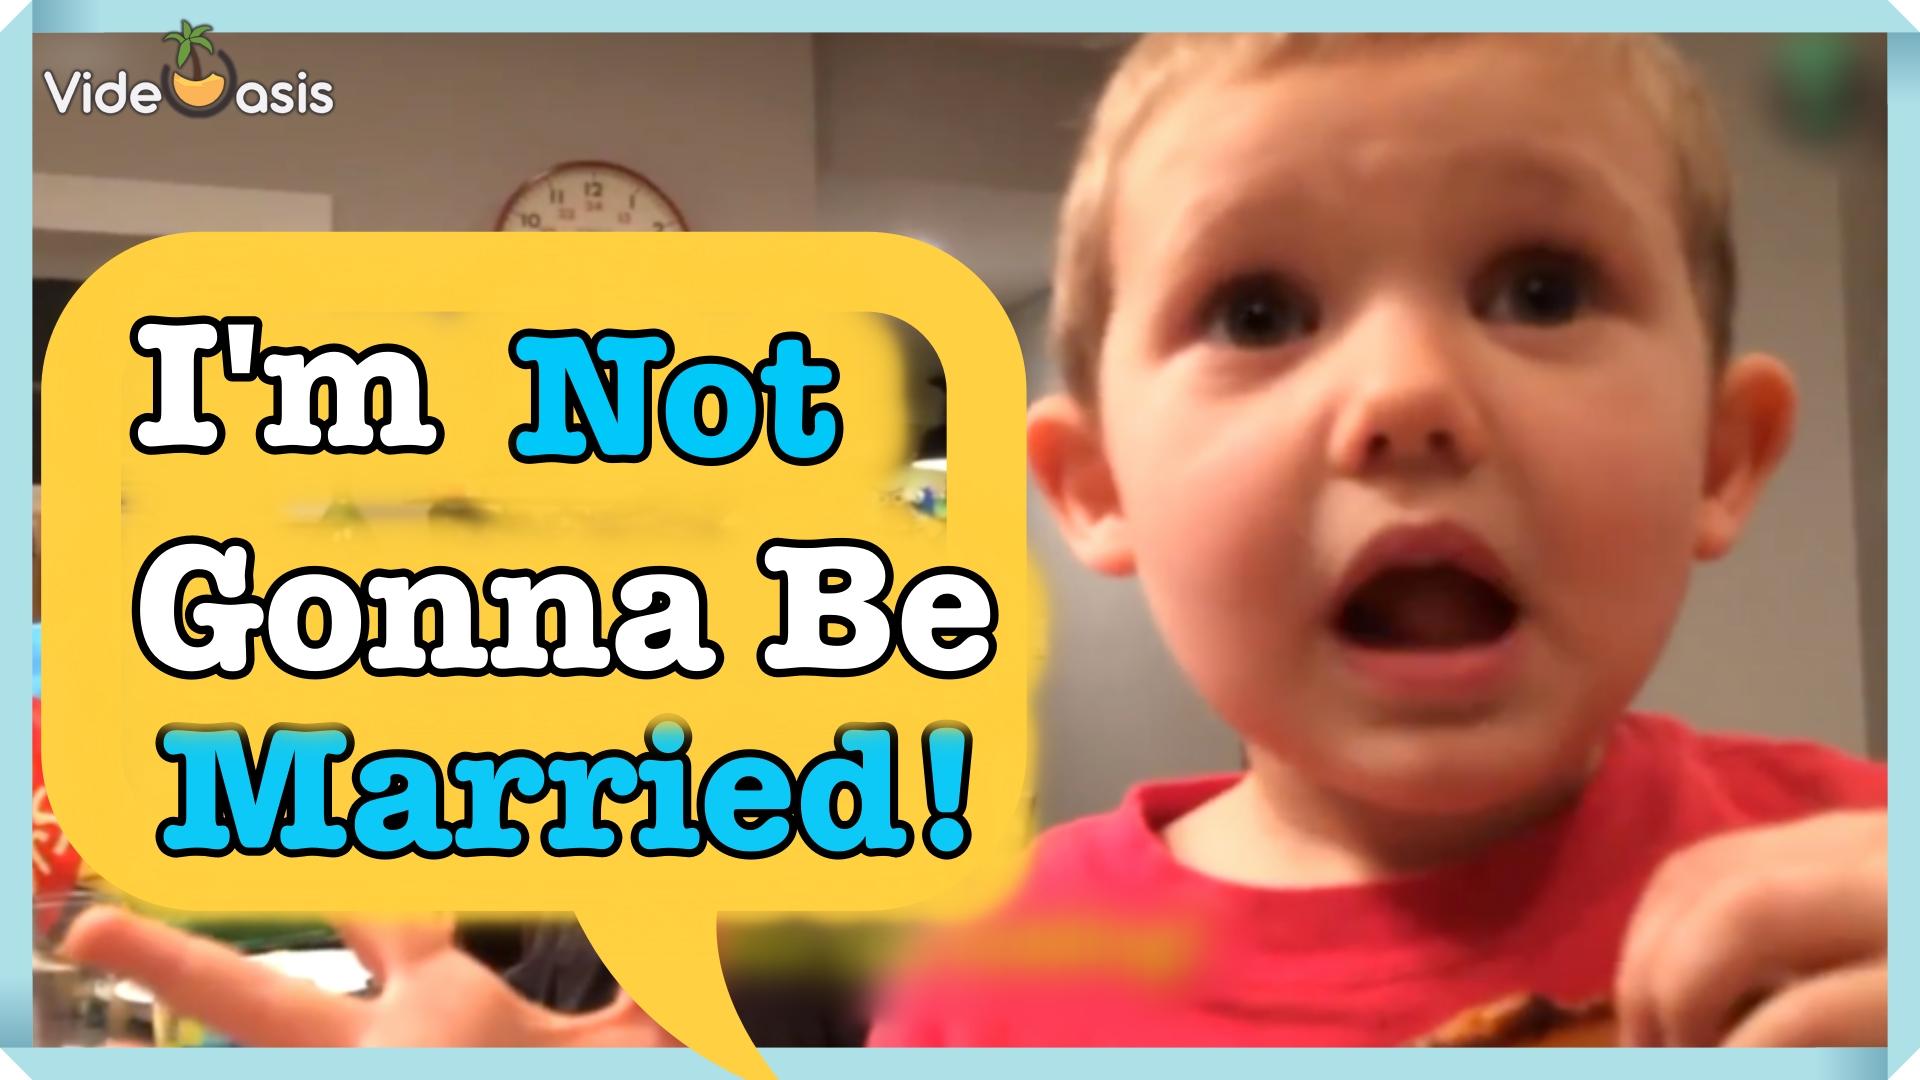 Little Boy Doesn't Want to Get Married|VideOasis